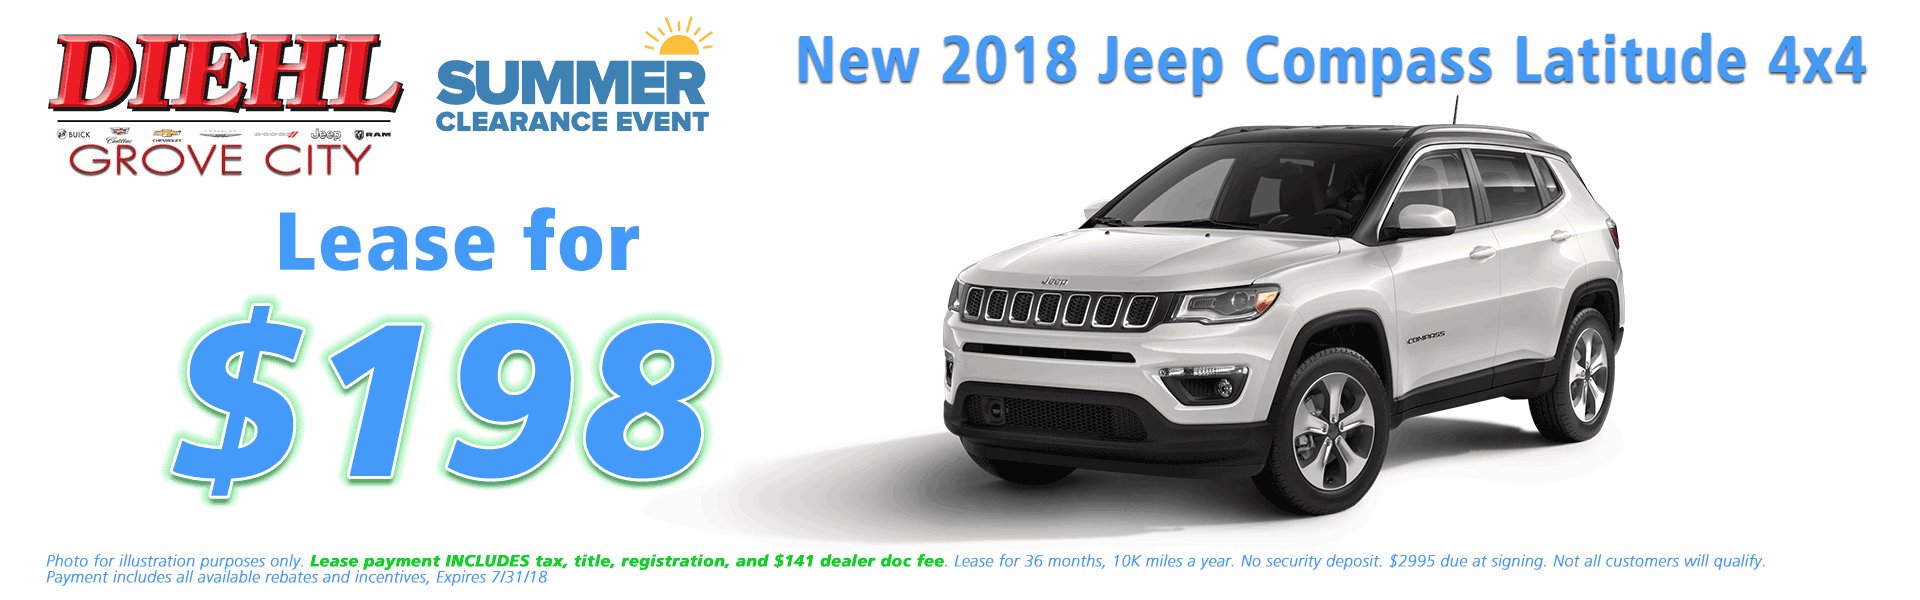 Diehl of Grove City, Grove City, PA 16127 Chrysler Jeep Dodge Ram Chevrolet Buick Cadillac NEW 2018 JEEP COMPASS LATITUDE 4X4